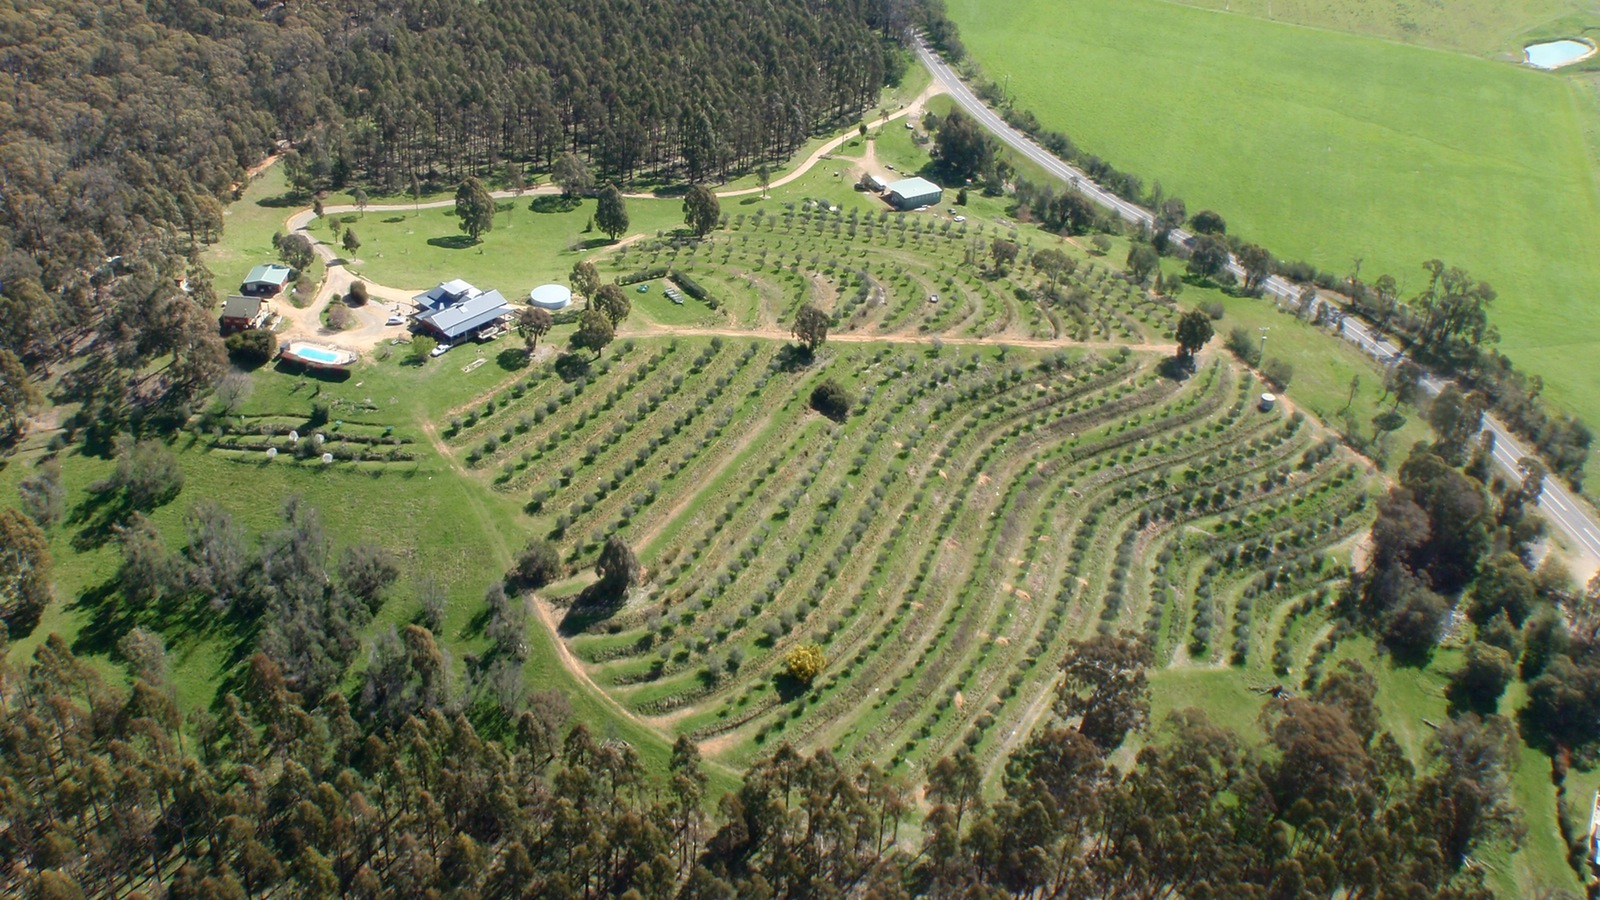 The olive grove at Mt Buffalo Olives